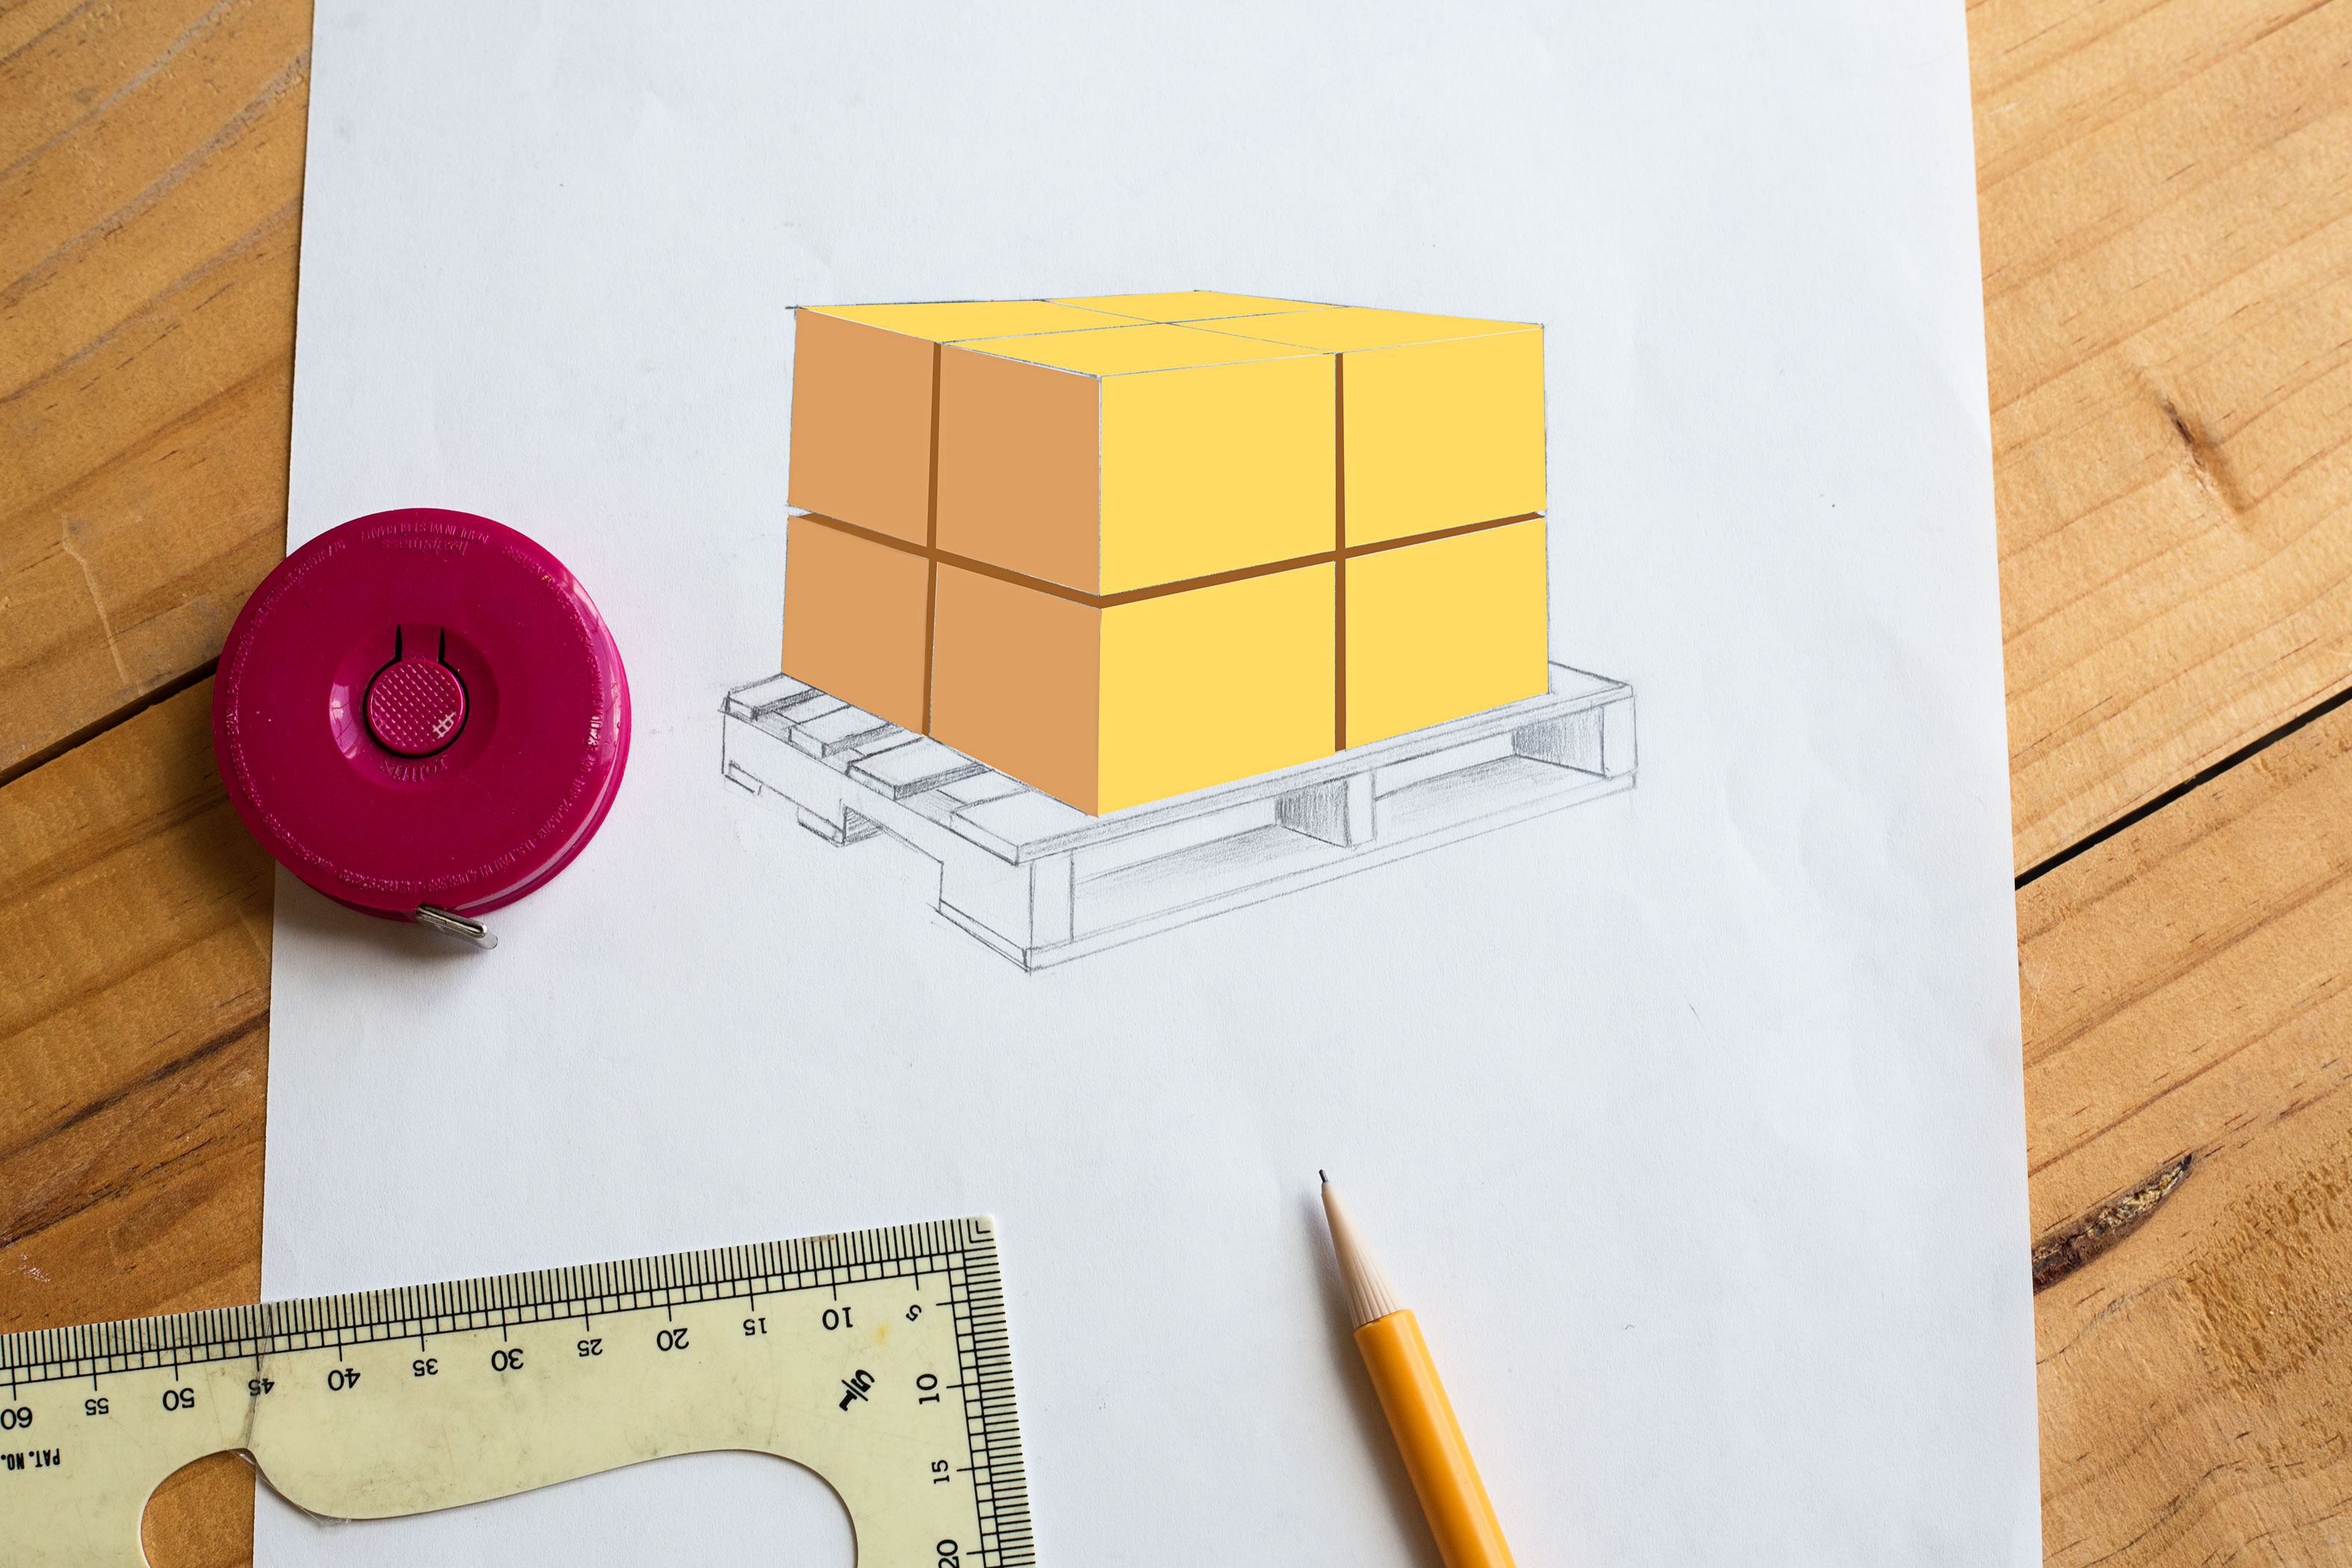 How to Calculate Container Load | Bizfluent